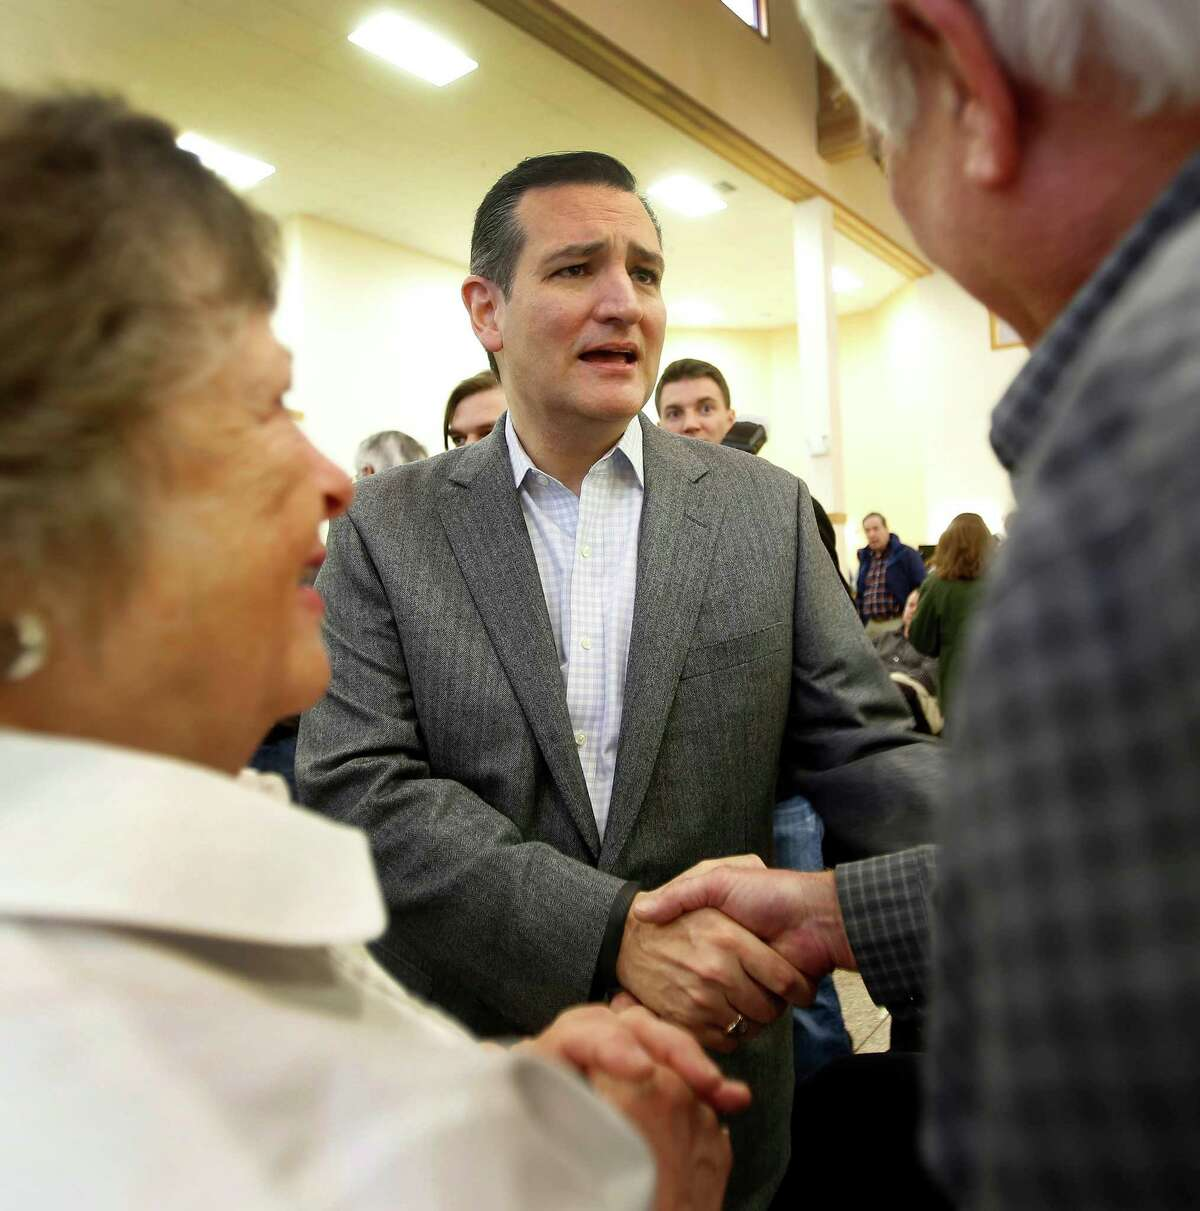 U.S. Sen. Ted Cruz, R-Texas, greets Sally, left, and Gil Priestley of Lee, N.H. during a Strafford County Republican Committee Chili and Chat on March 15.